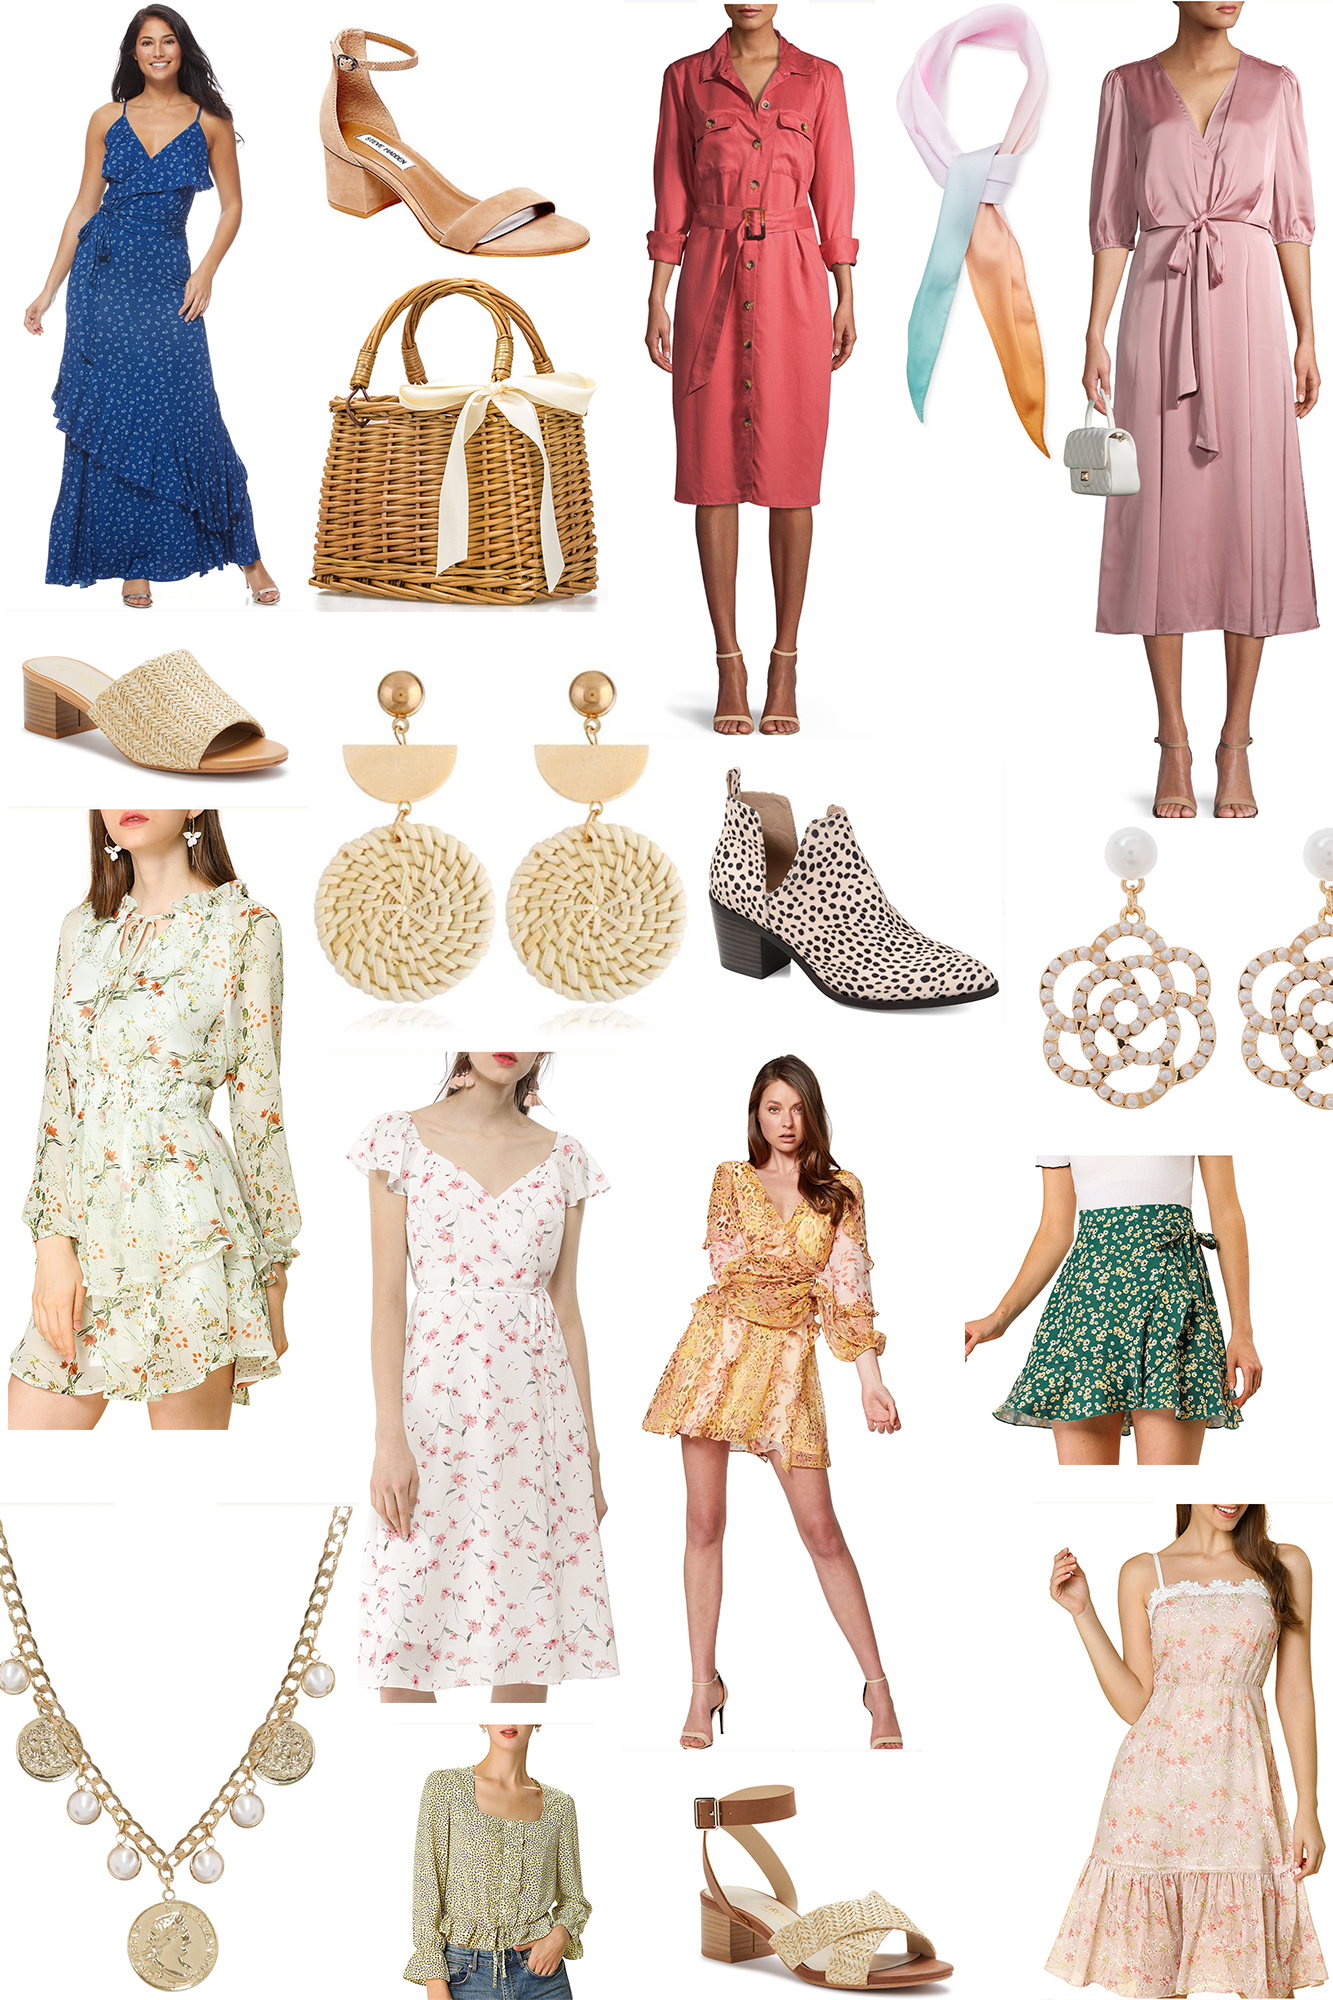 Floral & Feminine Spring Fashion Ideas || Rounded up all of the cutest Walmart affordable dresses and other looks for the warm weather!